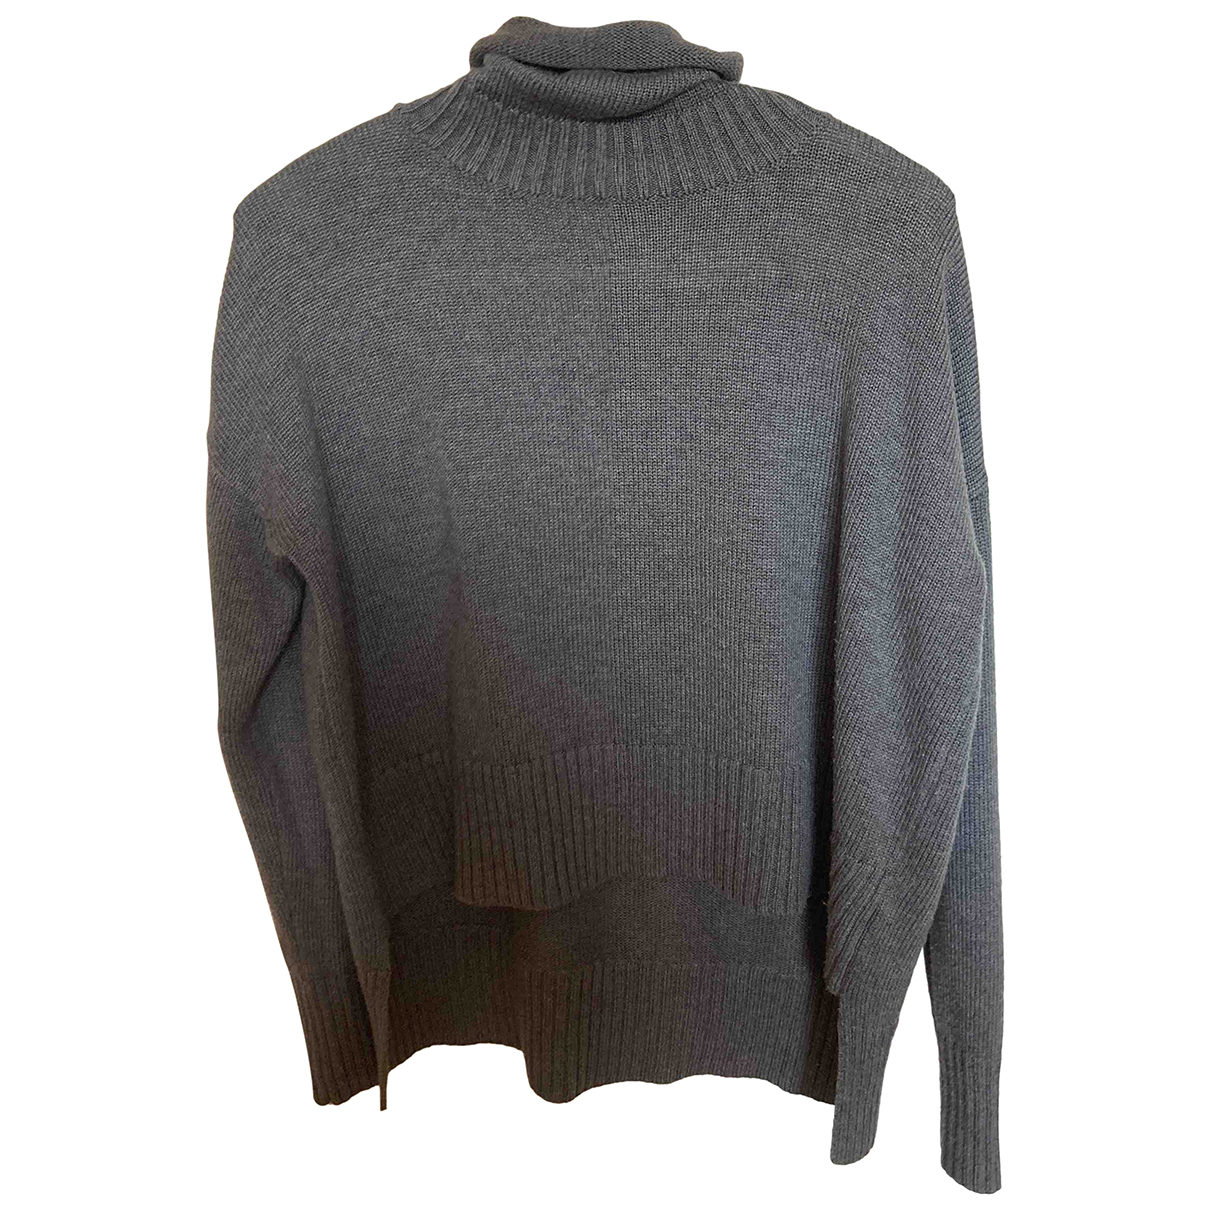 Religion N Grey Knitwear for Women S International